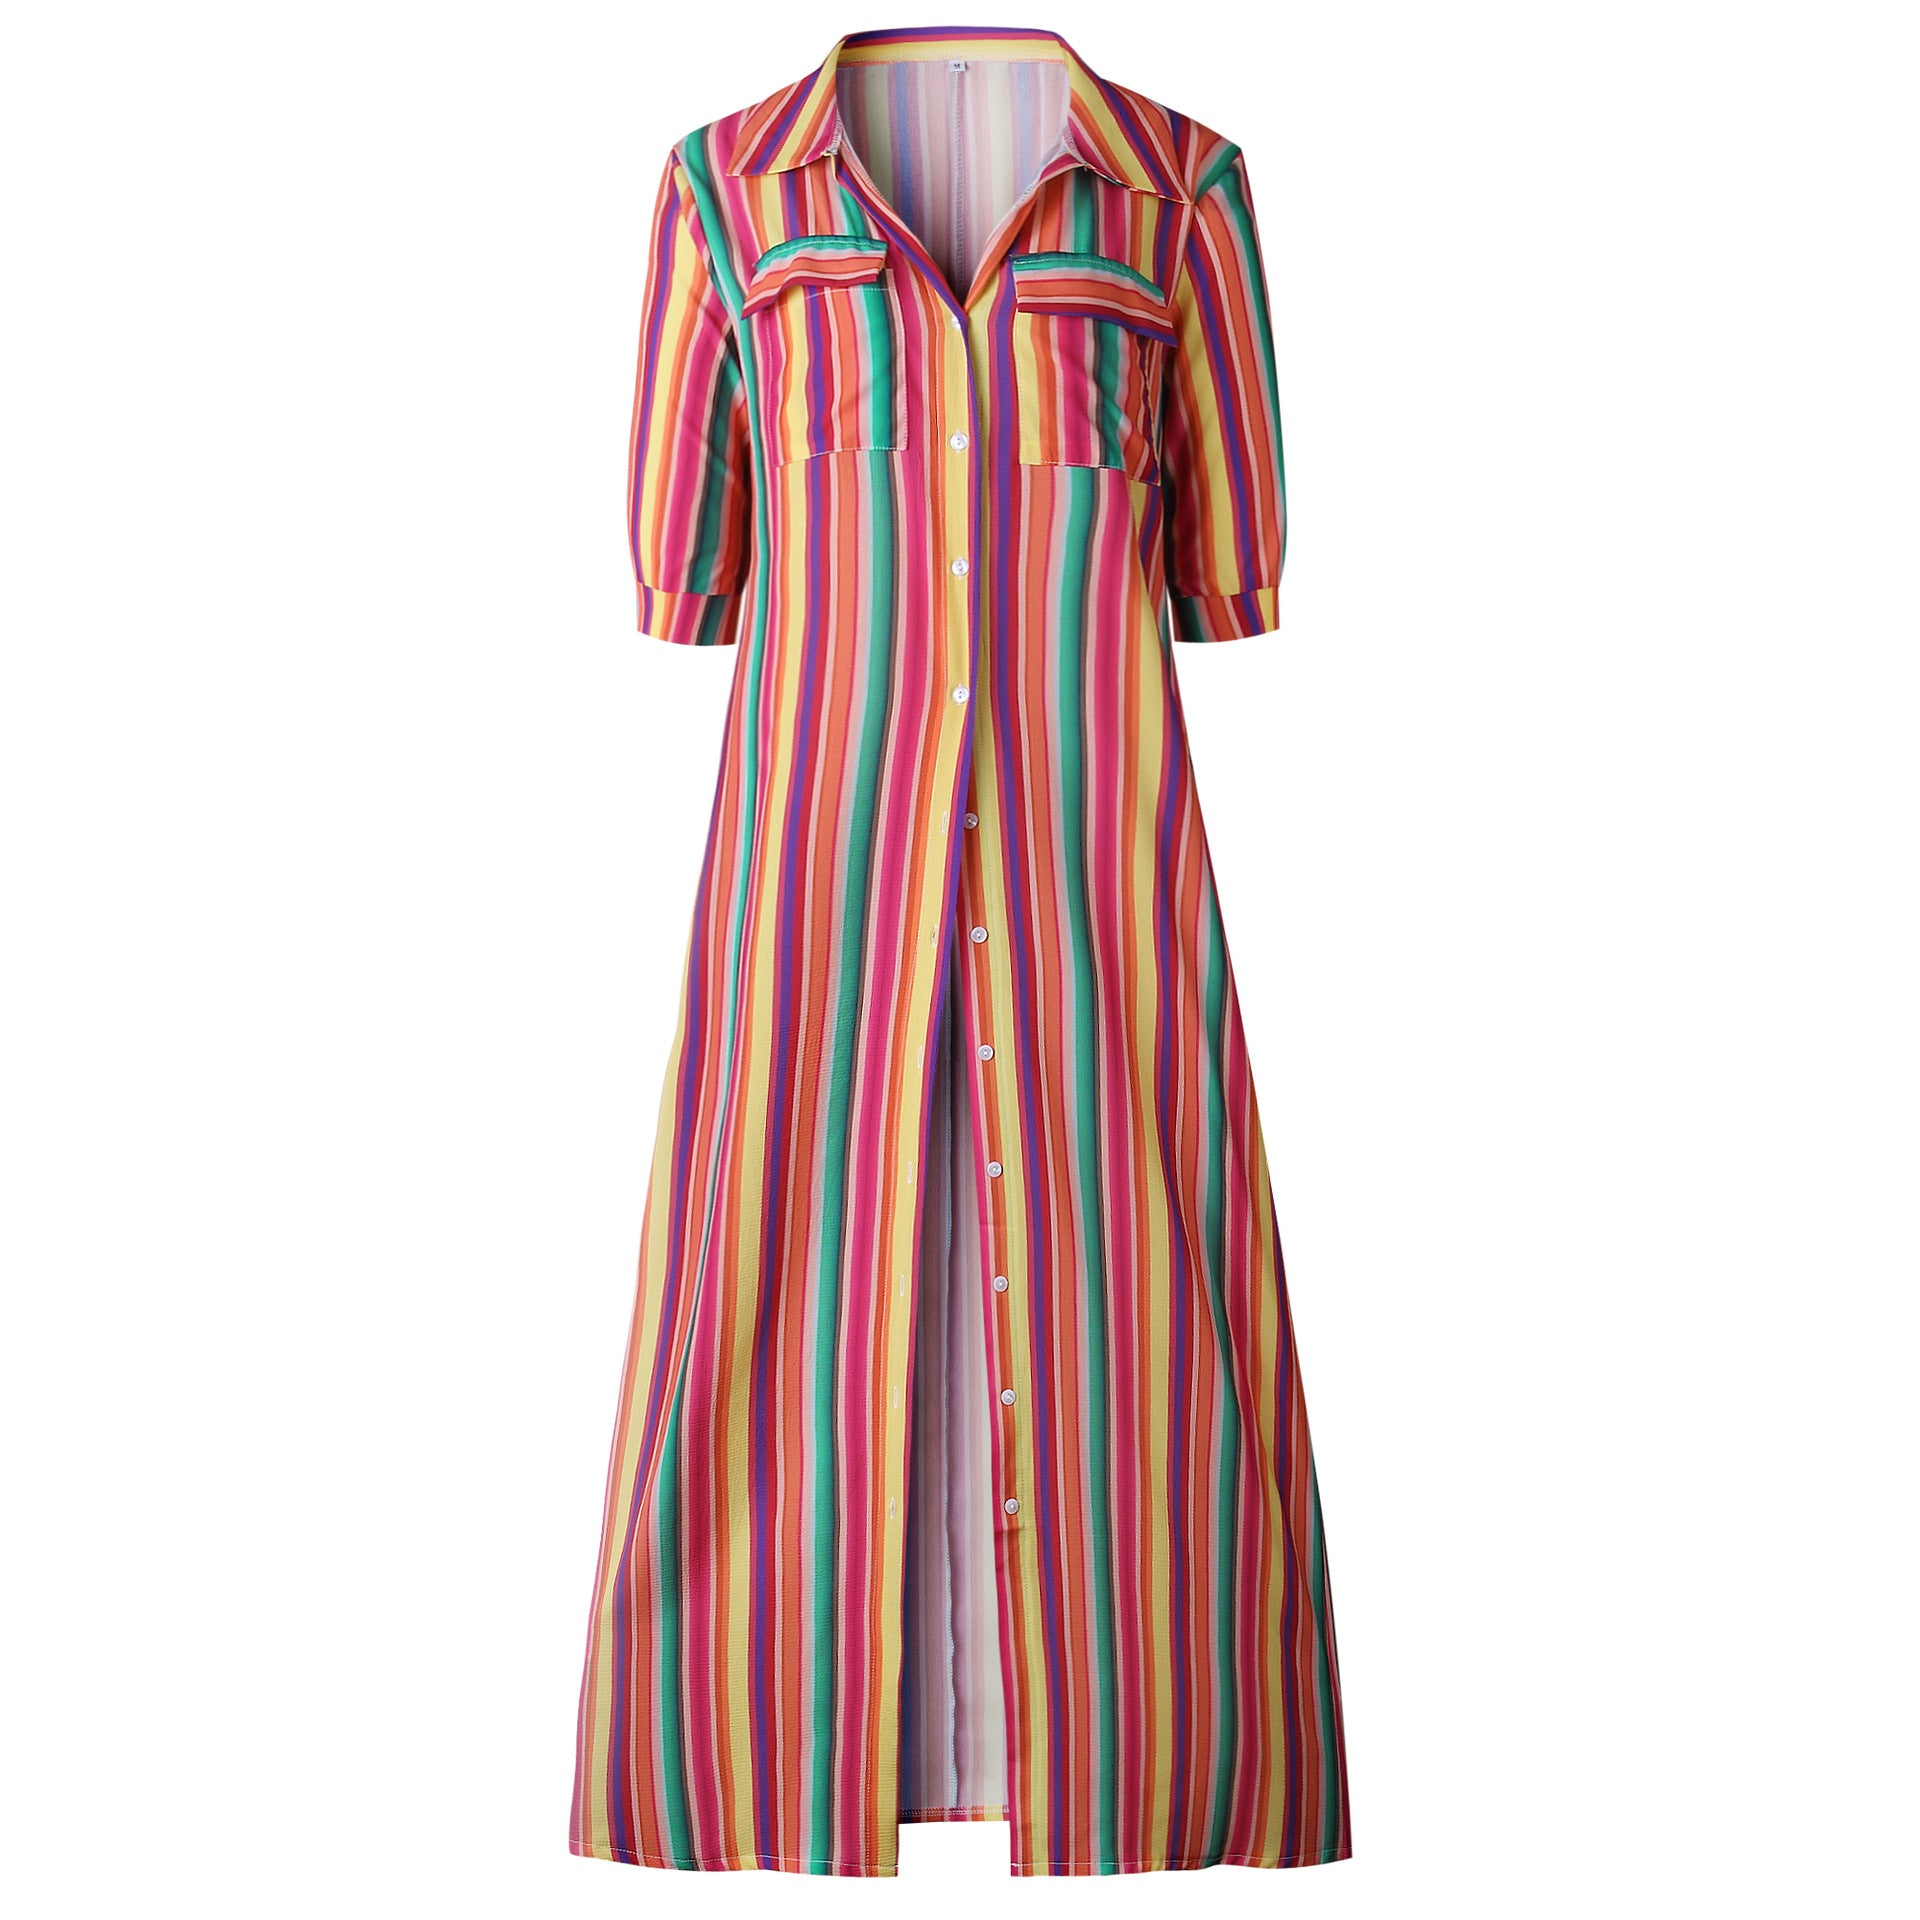 Rosa Striped Dress shirt